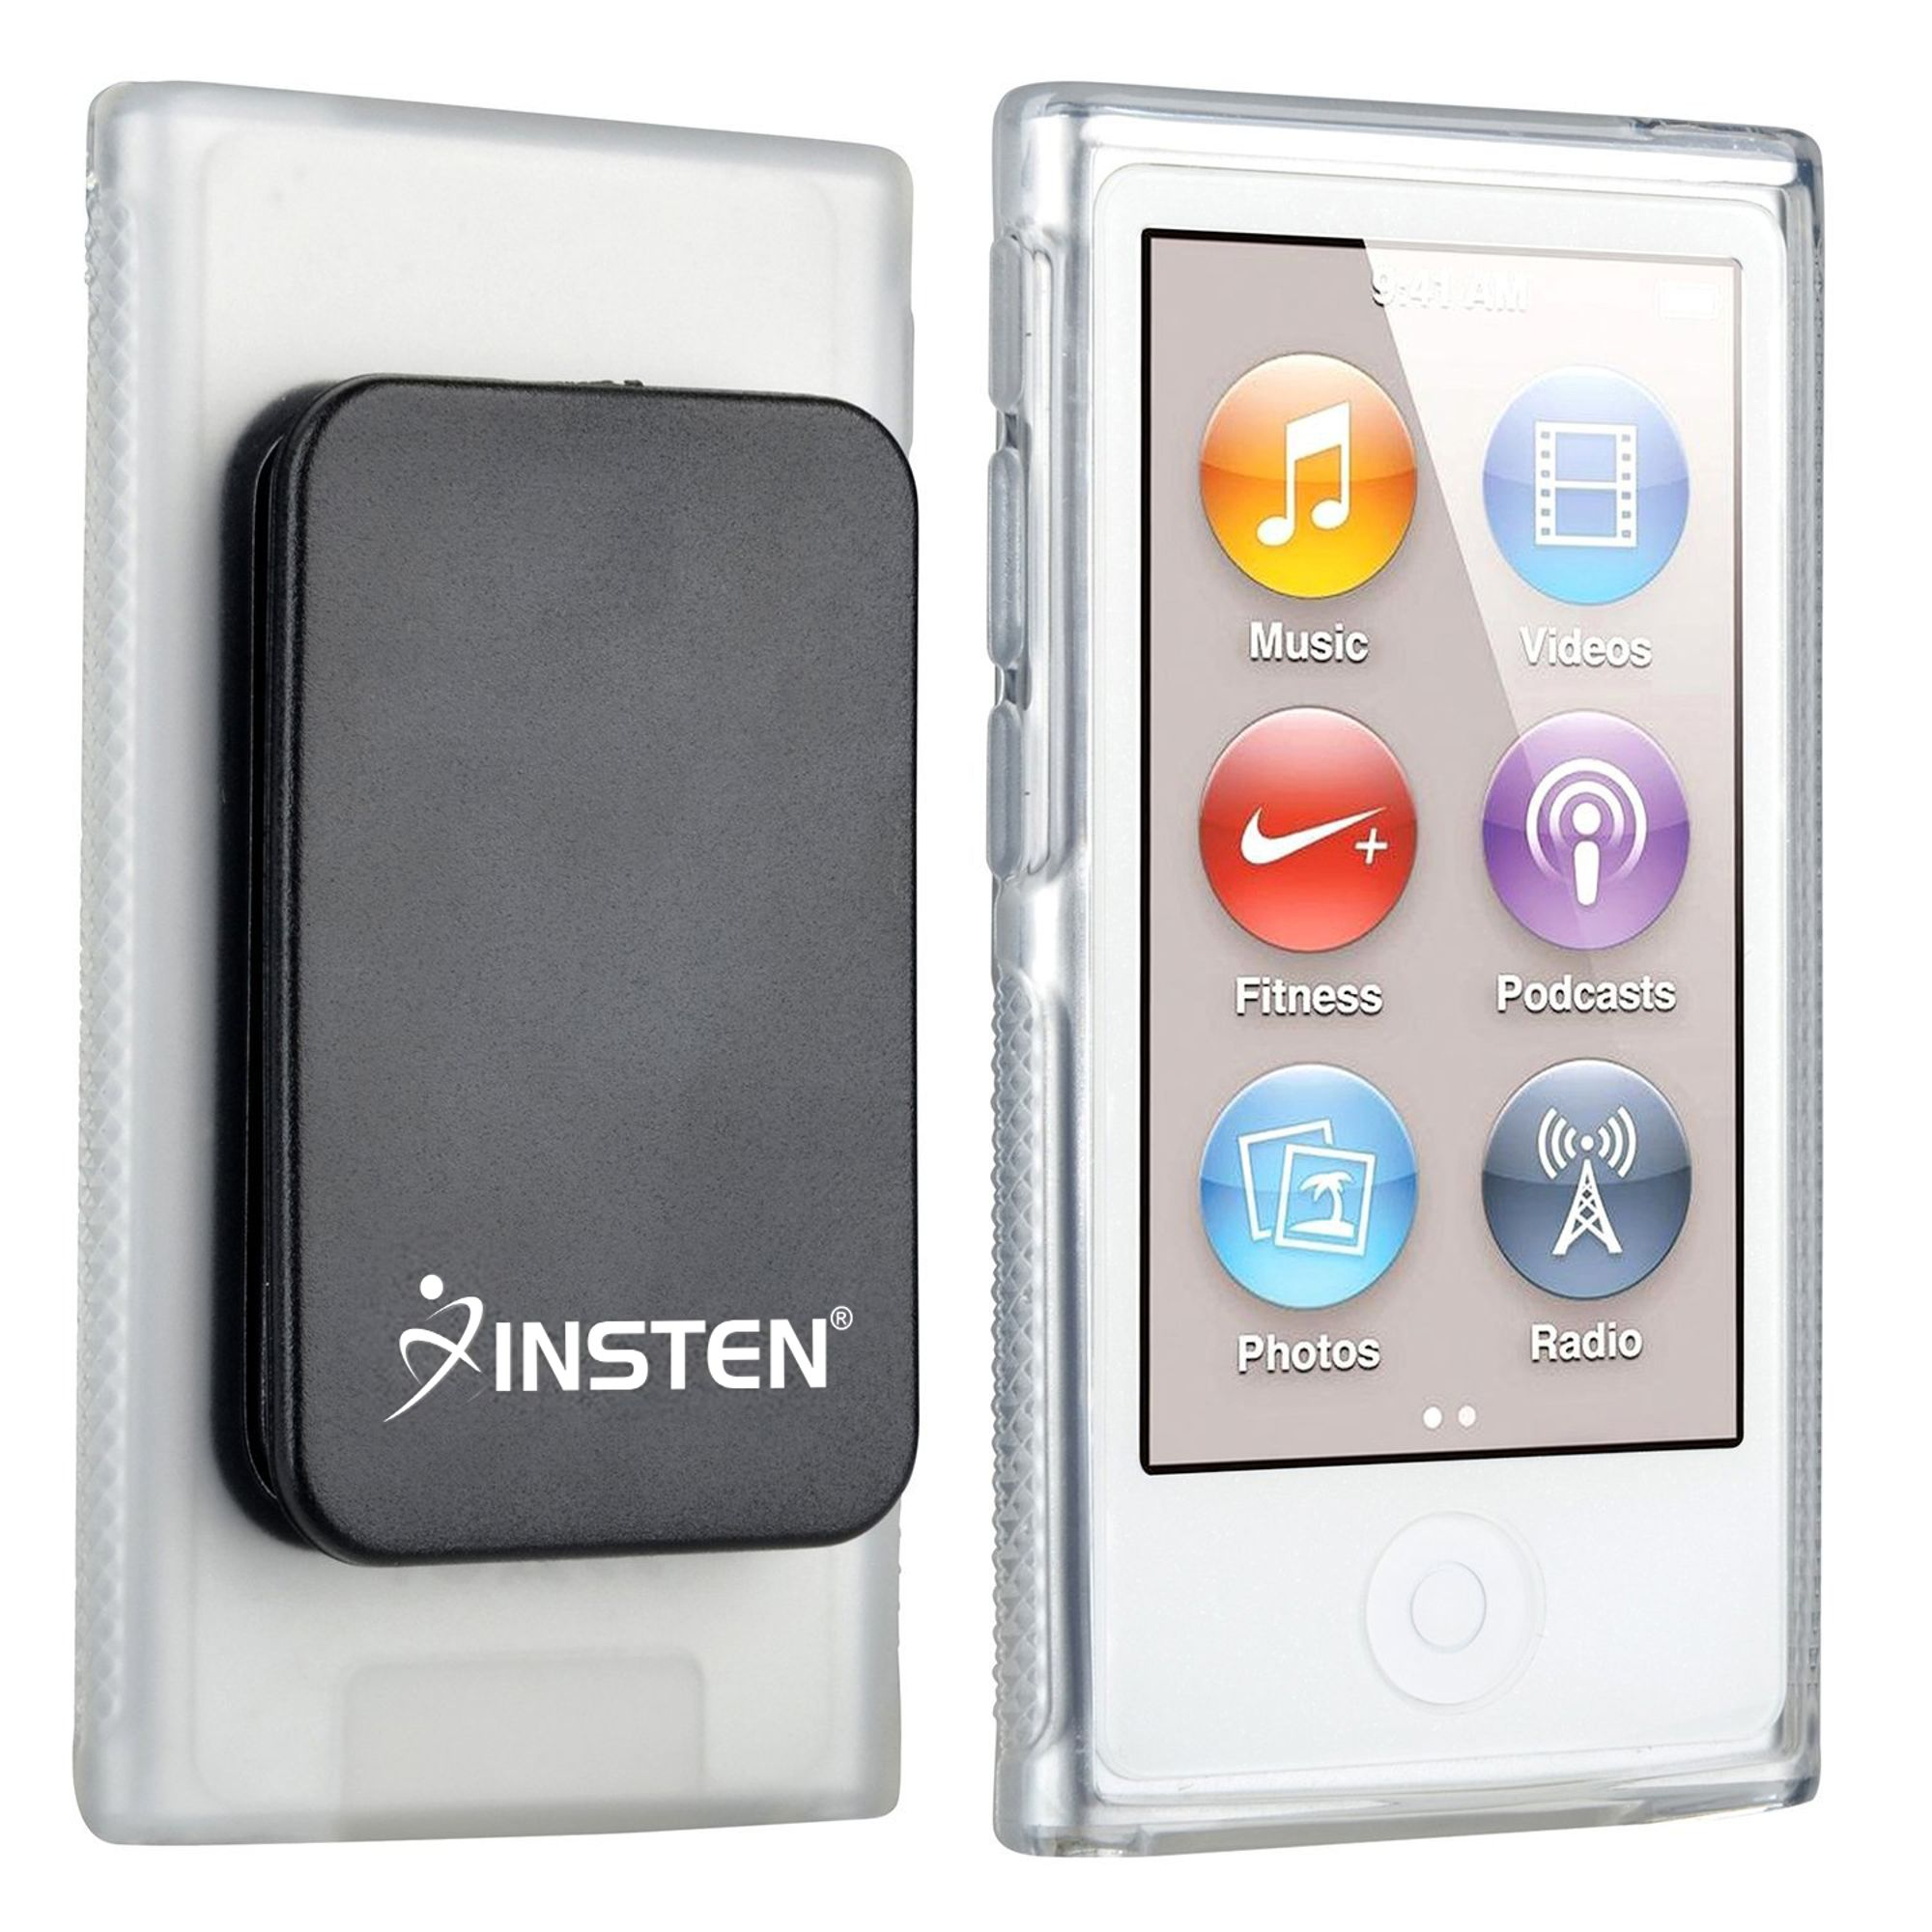 2 Pack Insten TPU Rubber Skin Case with Belt Clip For Apple iPod nano 7 7th Generation, Clear